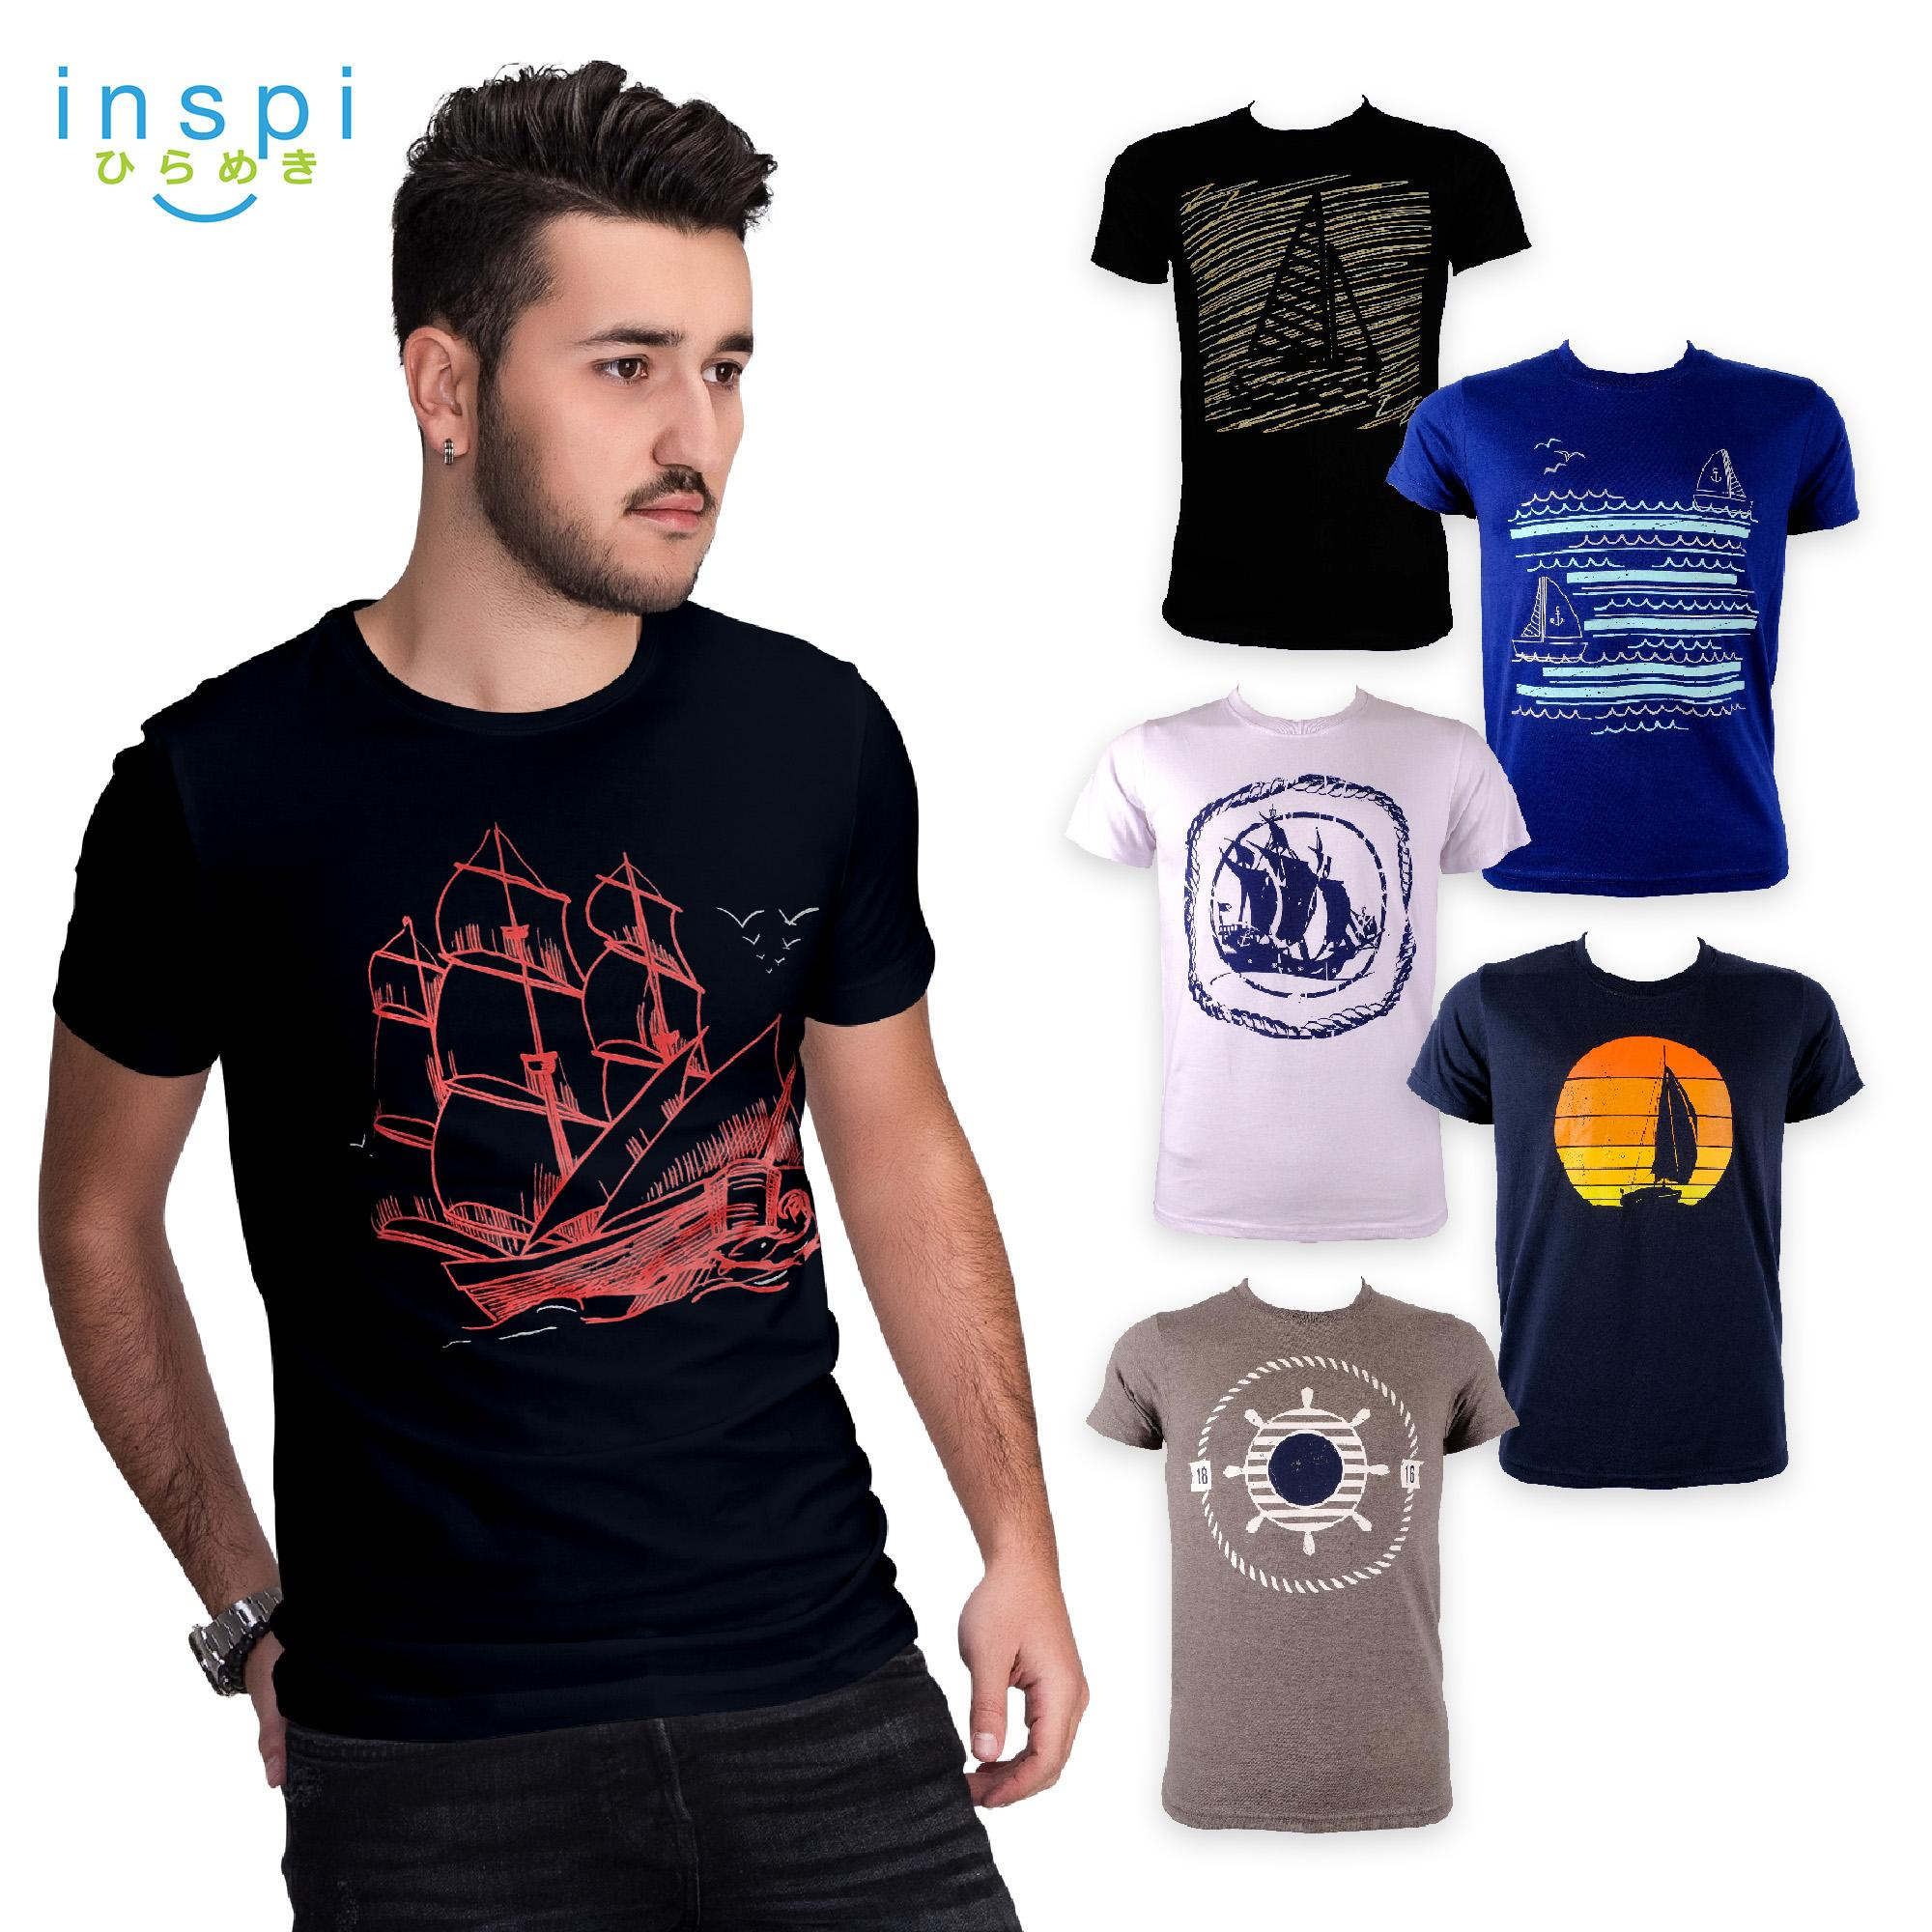 6daf467ef36 INSPI Tees Sailing Collection tshirt printed graphic tee Mens t shirt shirts  for men tshirts sale